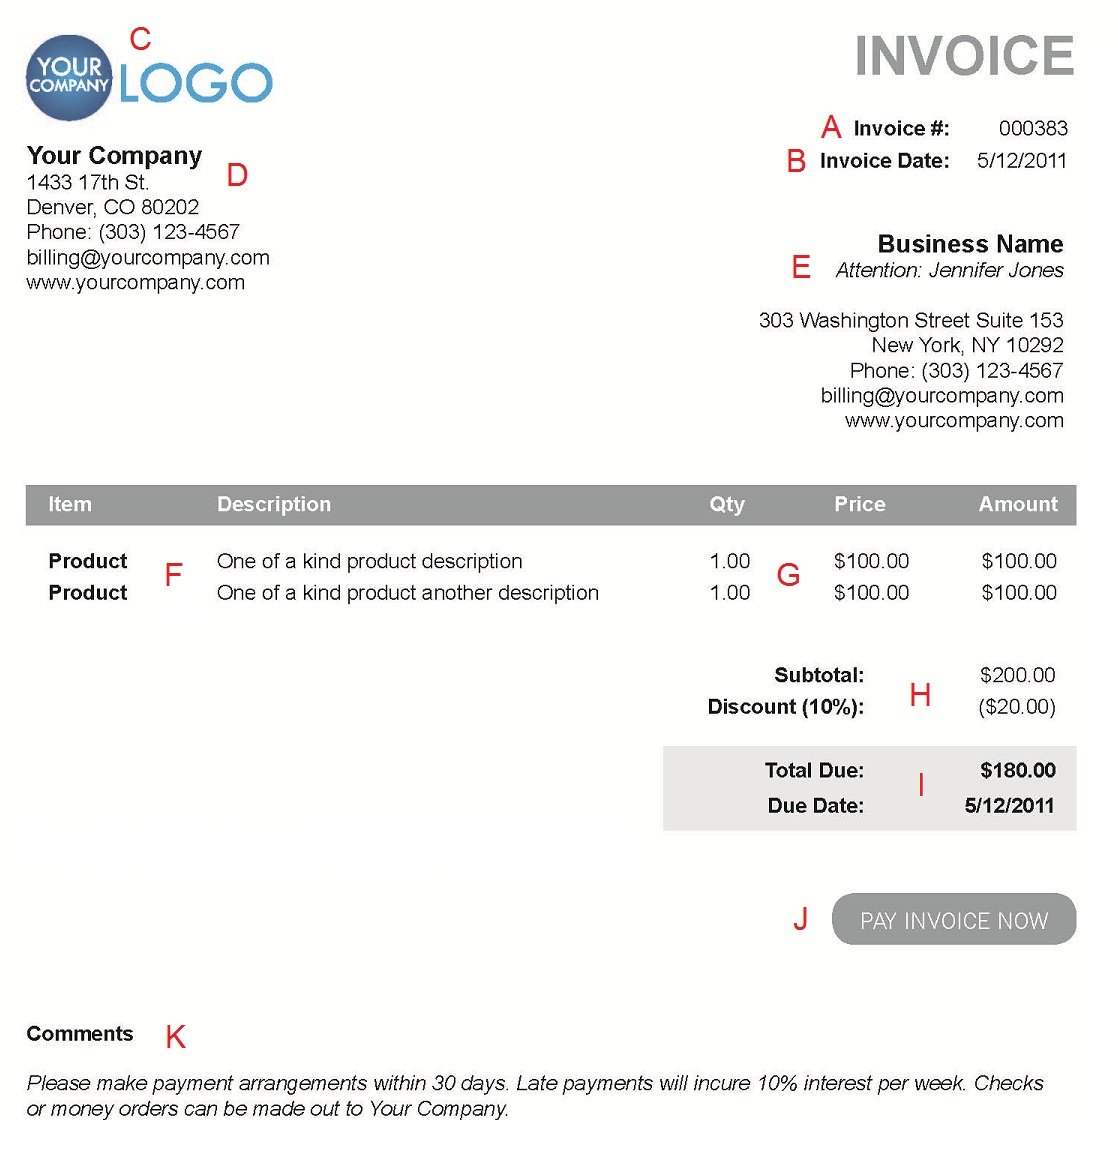 Ultrablogus  Gorgeous The  Different Sections Of An Electronic Payment Invoice With Excellent A  With Divine Factoring Invoice Discounting Also Free Plumbing Invoice Template In Addition Quotation Invoice Template And Vertex Invoice Template As Well As What A Invoice Additionally Ipad Invoicing From Paysimplecom With Ultrablogus  Excellent The  Different Sections Of An Electronic Payment Invoice With Divine A  And Gorgeous Factoring Invoice Discounting Also Free Plumbing Invoice Template In Addition Quotation Invoice Template From Paysimplecom